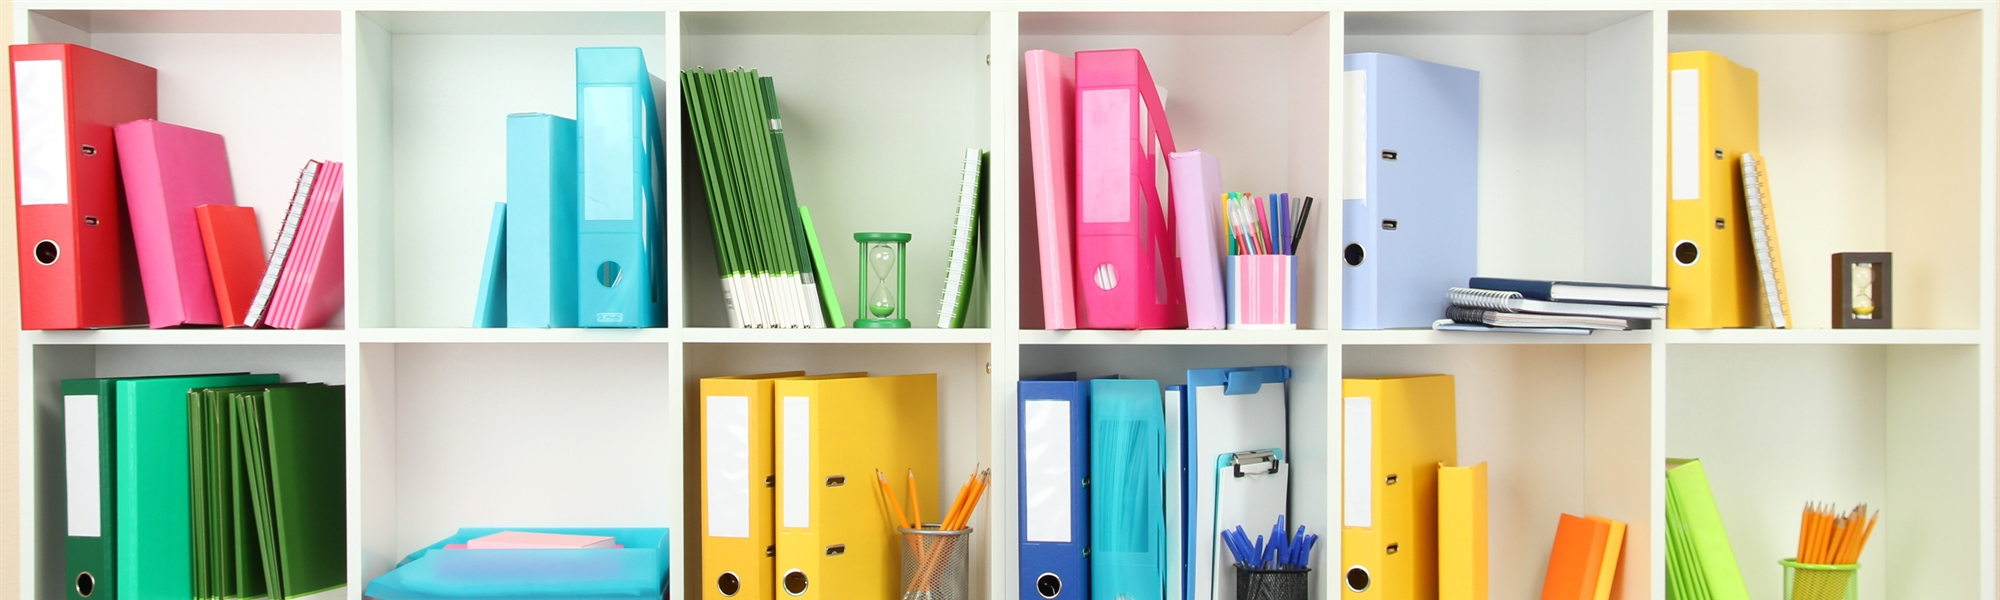 Stress Free Organization for the Skilled Professional